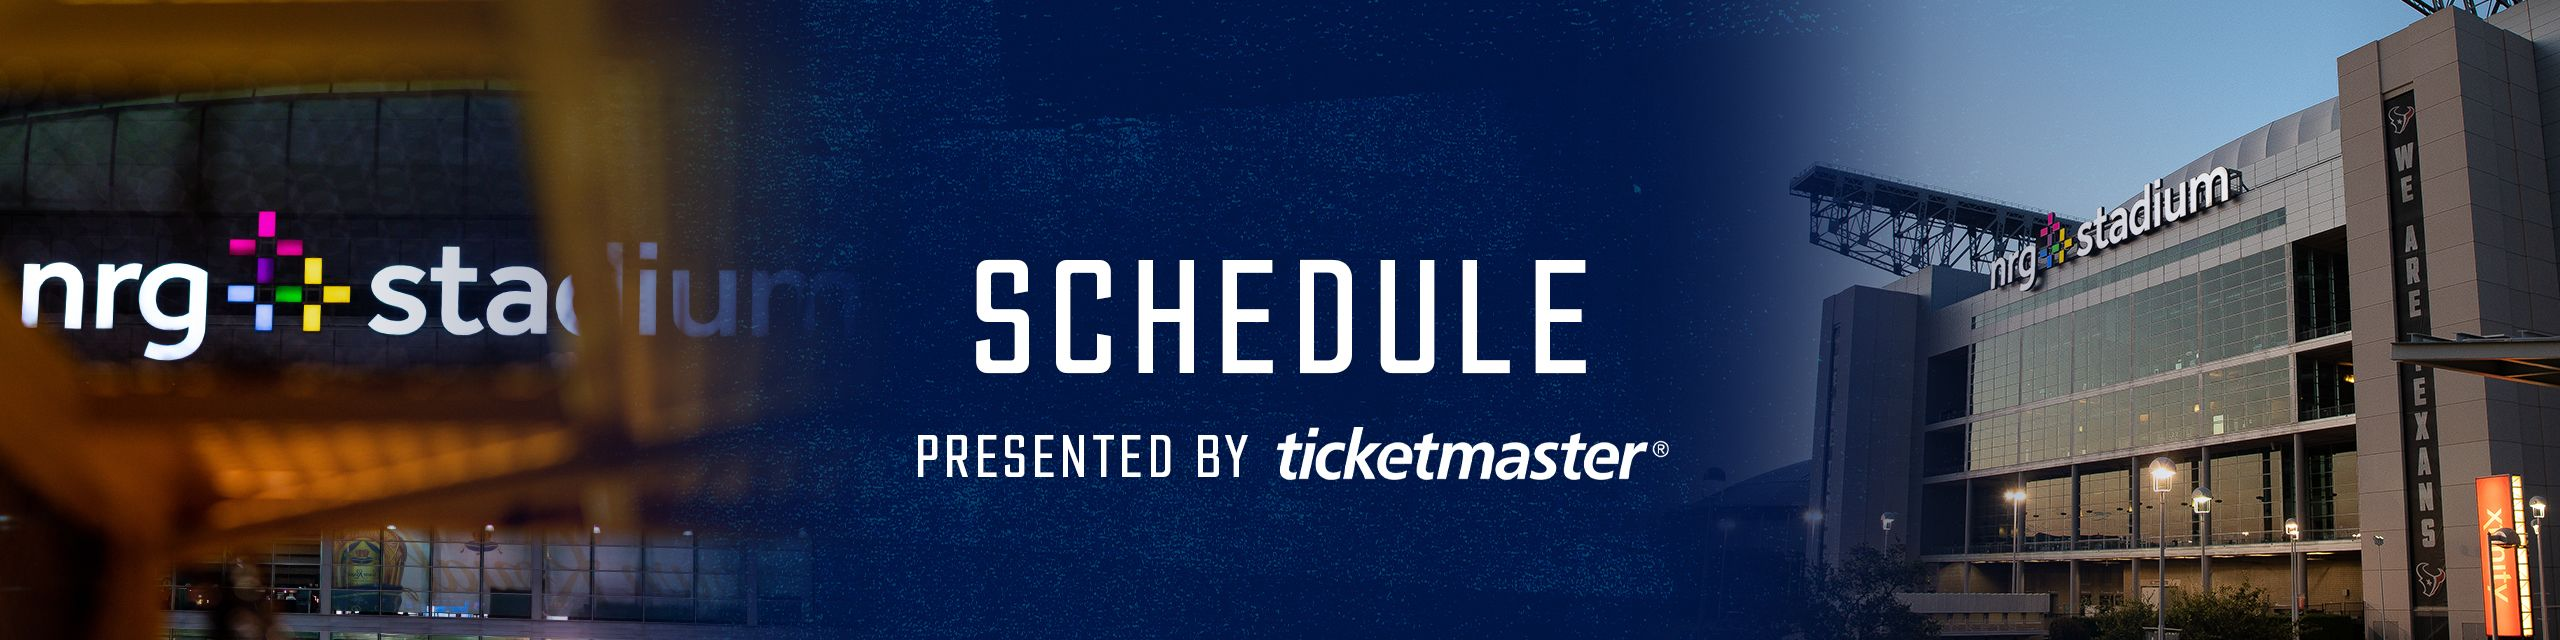 Texans Schedule Houston Texans Houstontexans Com